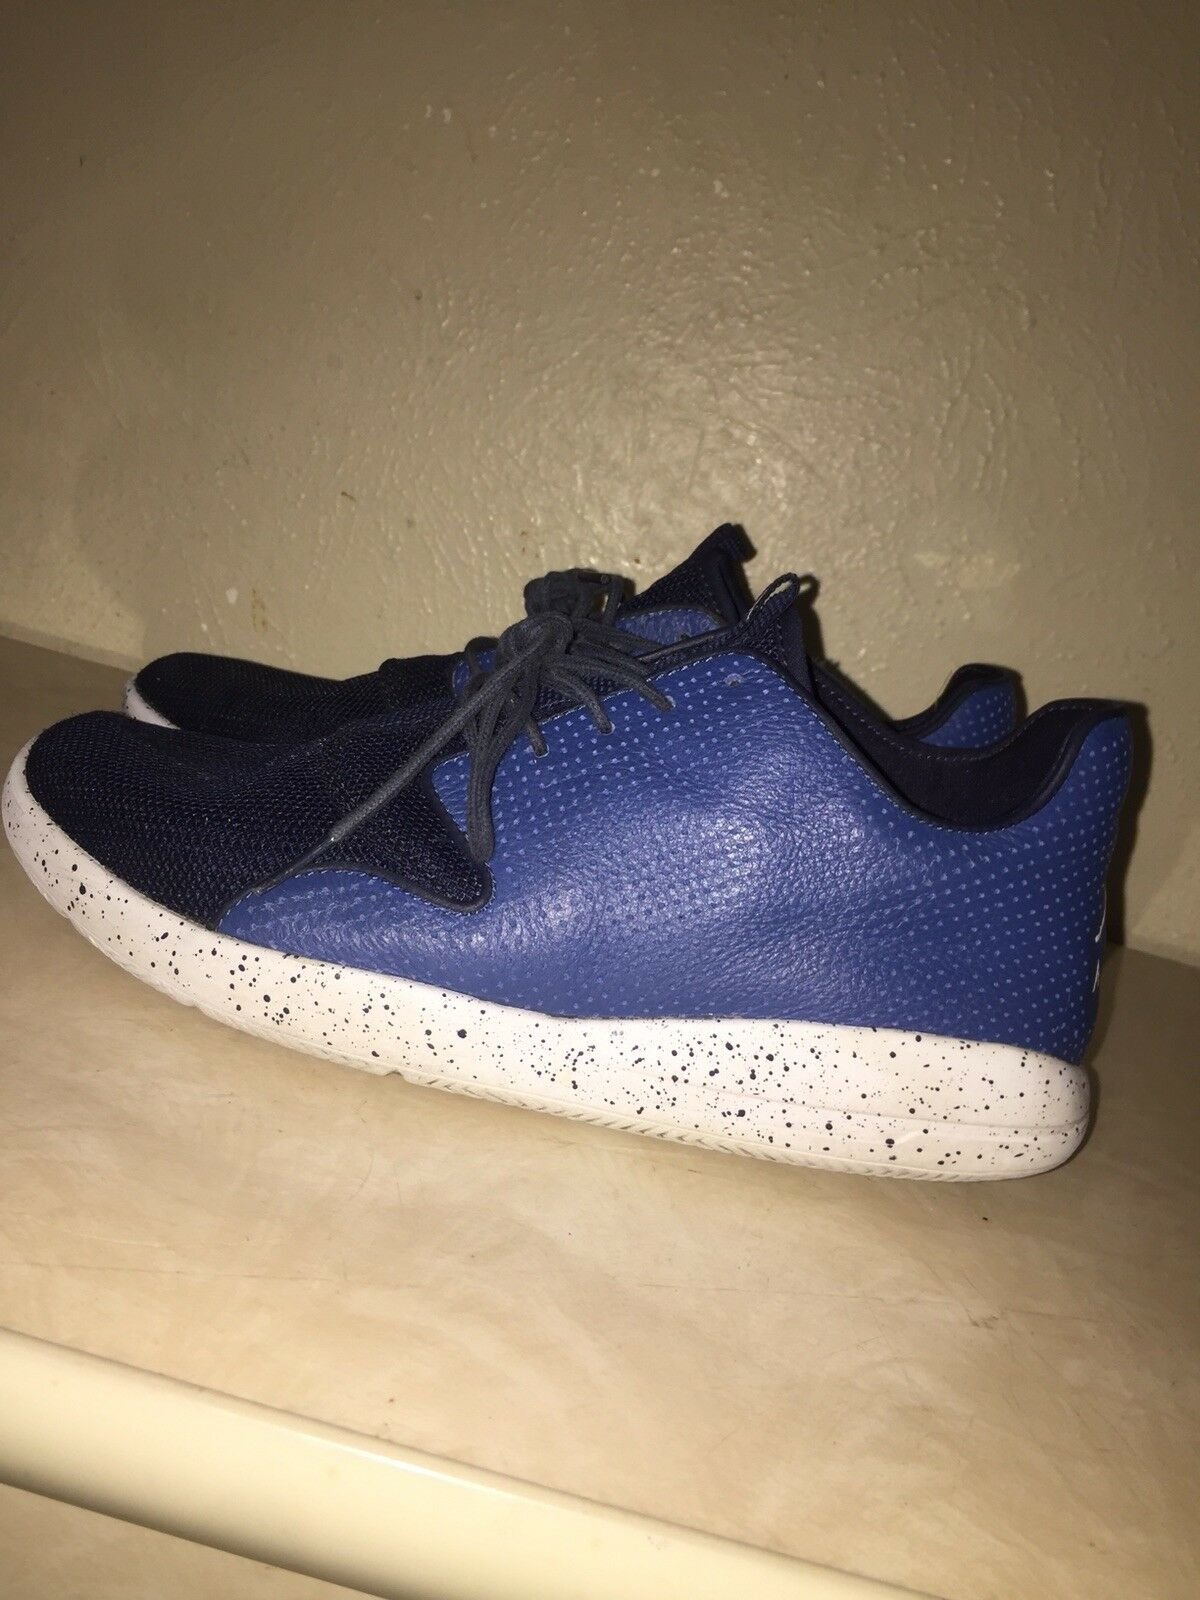 JORDAN ECLIPSE | FRENCH BLUE | 724010 401 | SIZE 9 US Cheap women's shoes women's shoes